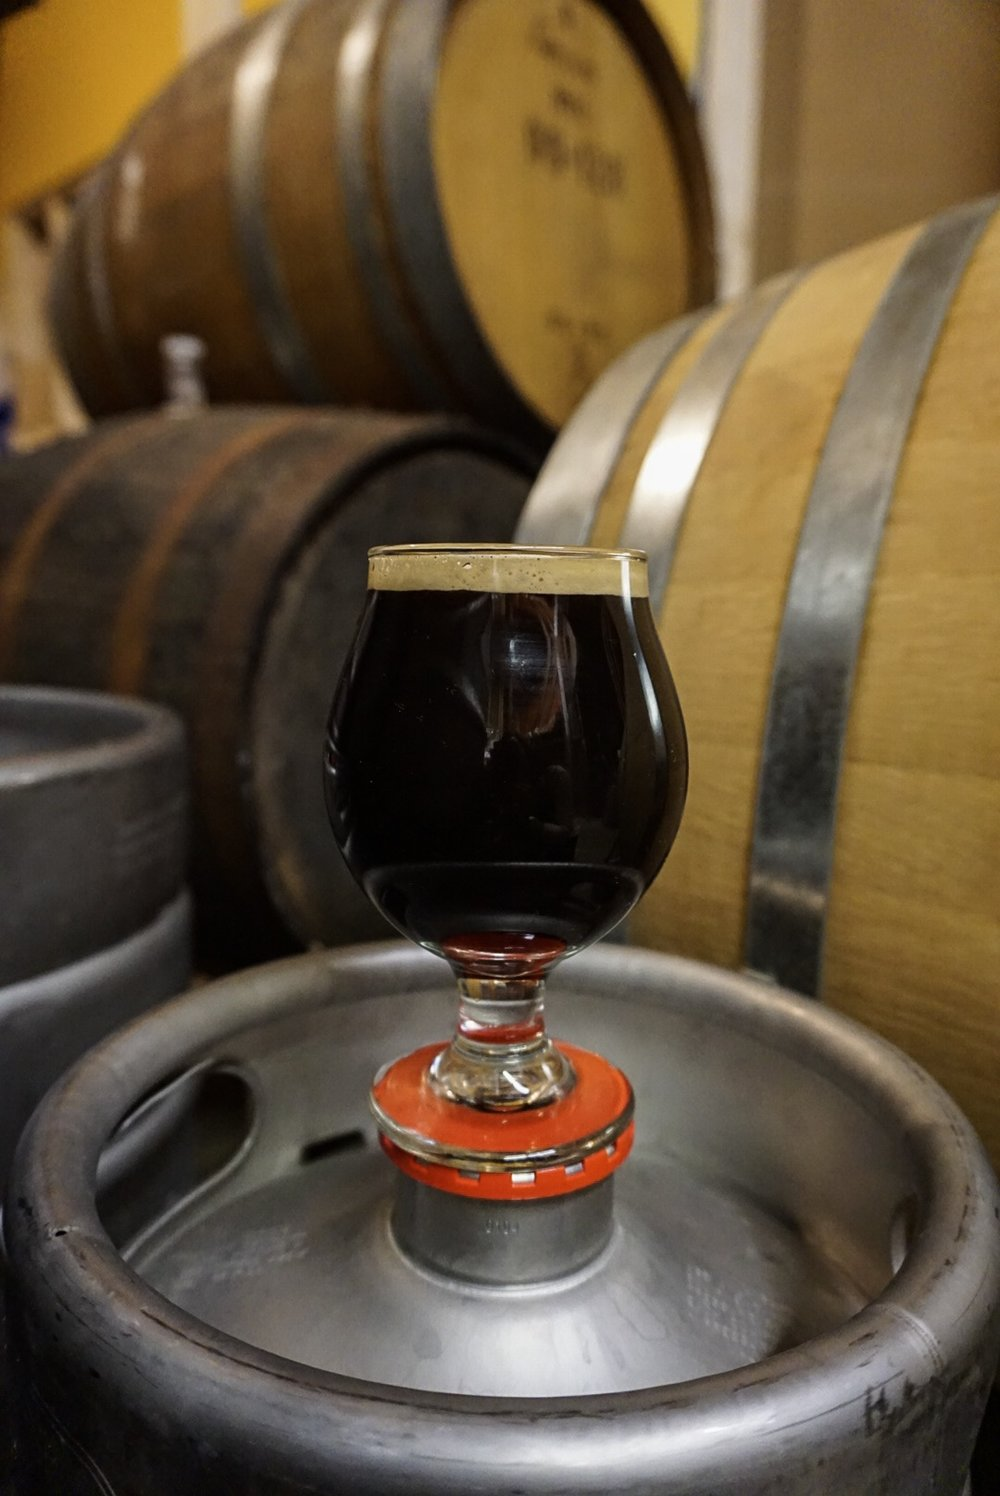 (VEEK)TOR, Russian Imperial Stout, 10.5 % ABV - Barrel aged blend from a bourbon barrel and a rum barrel. Rich and chewy Russian Imperial Stout Goodness.